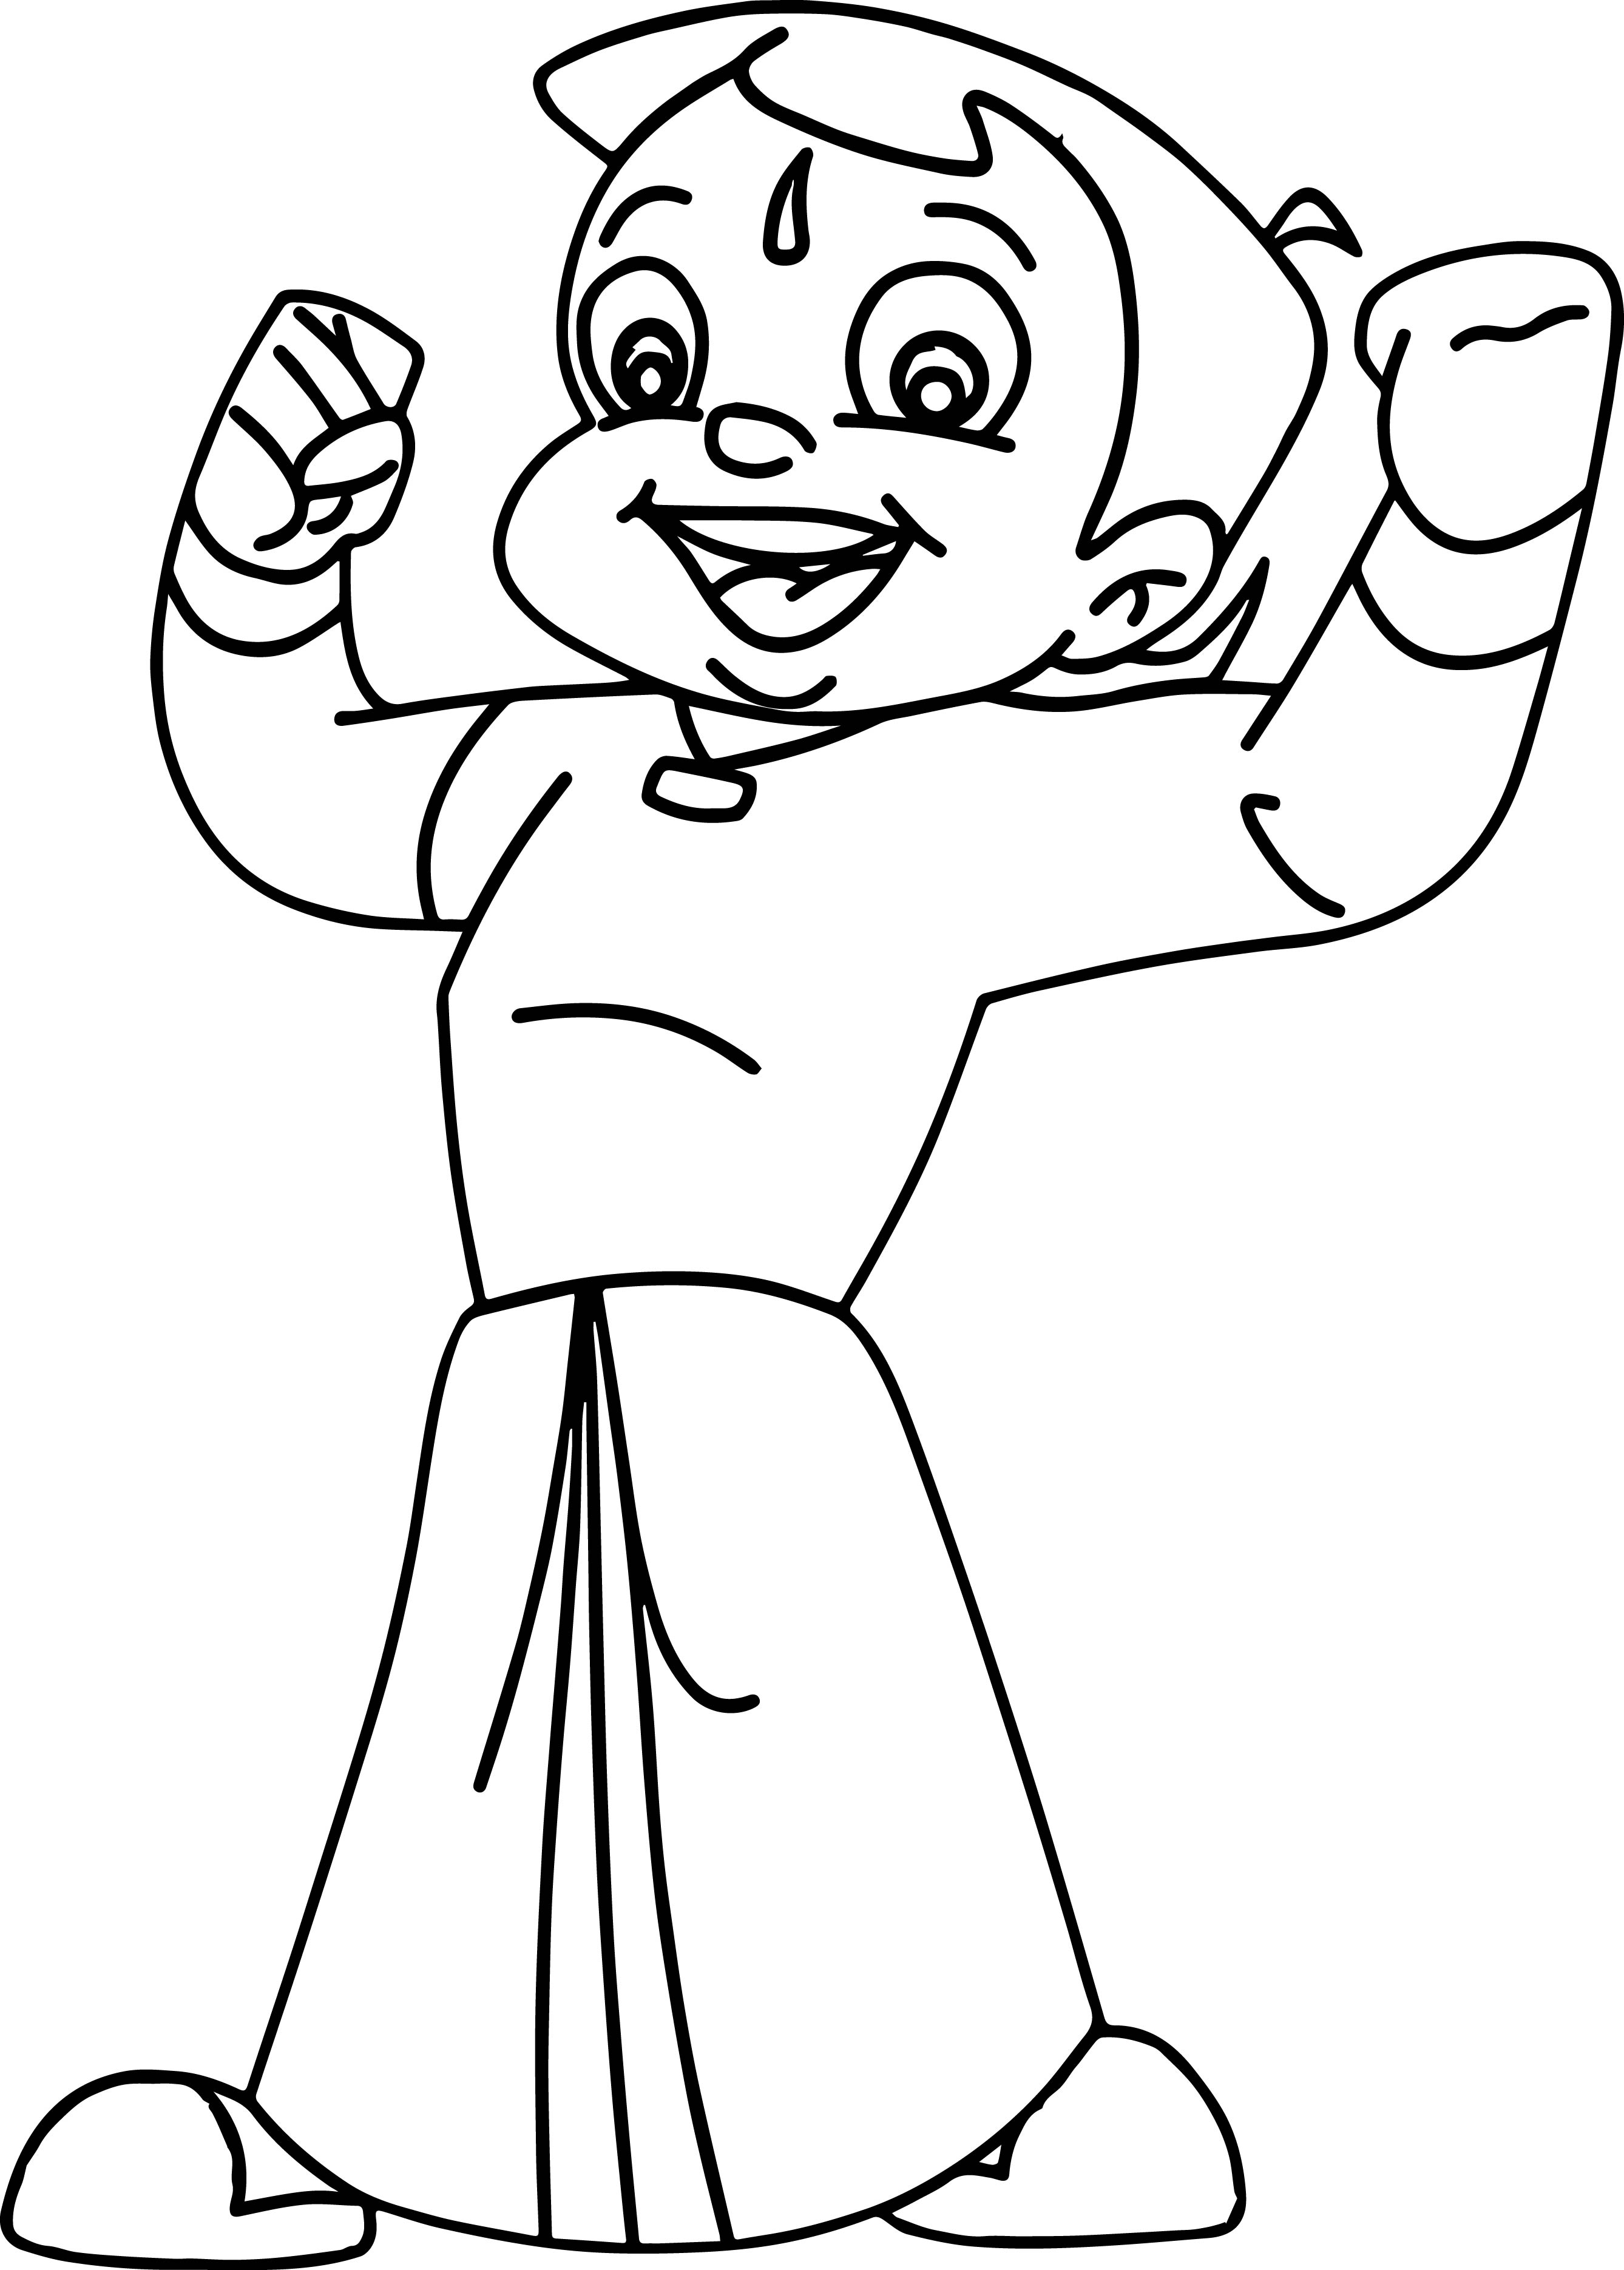 chota bheem team coloring pages - photo#2